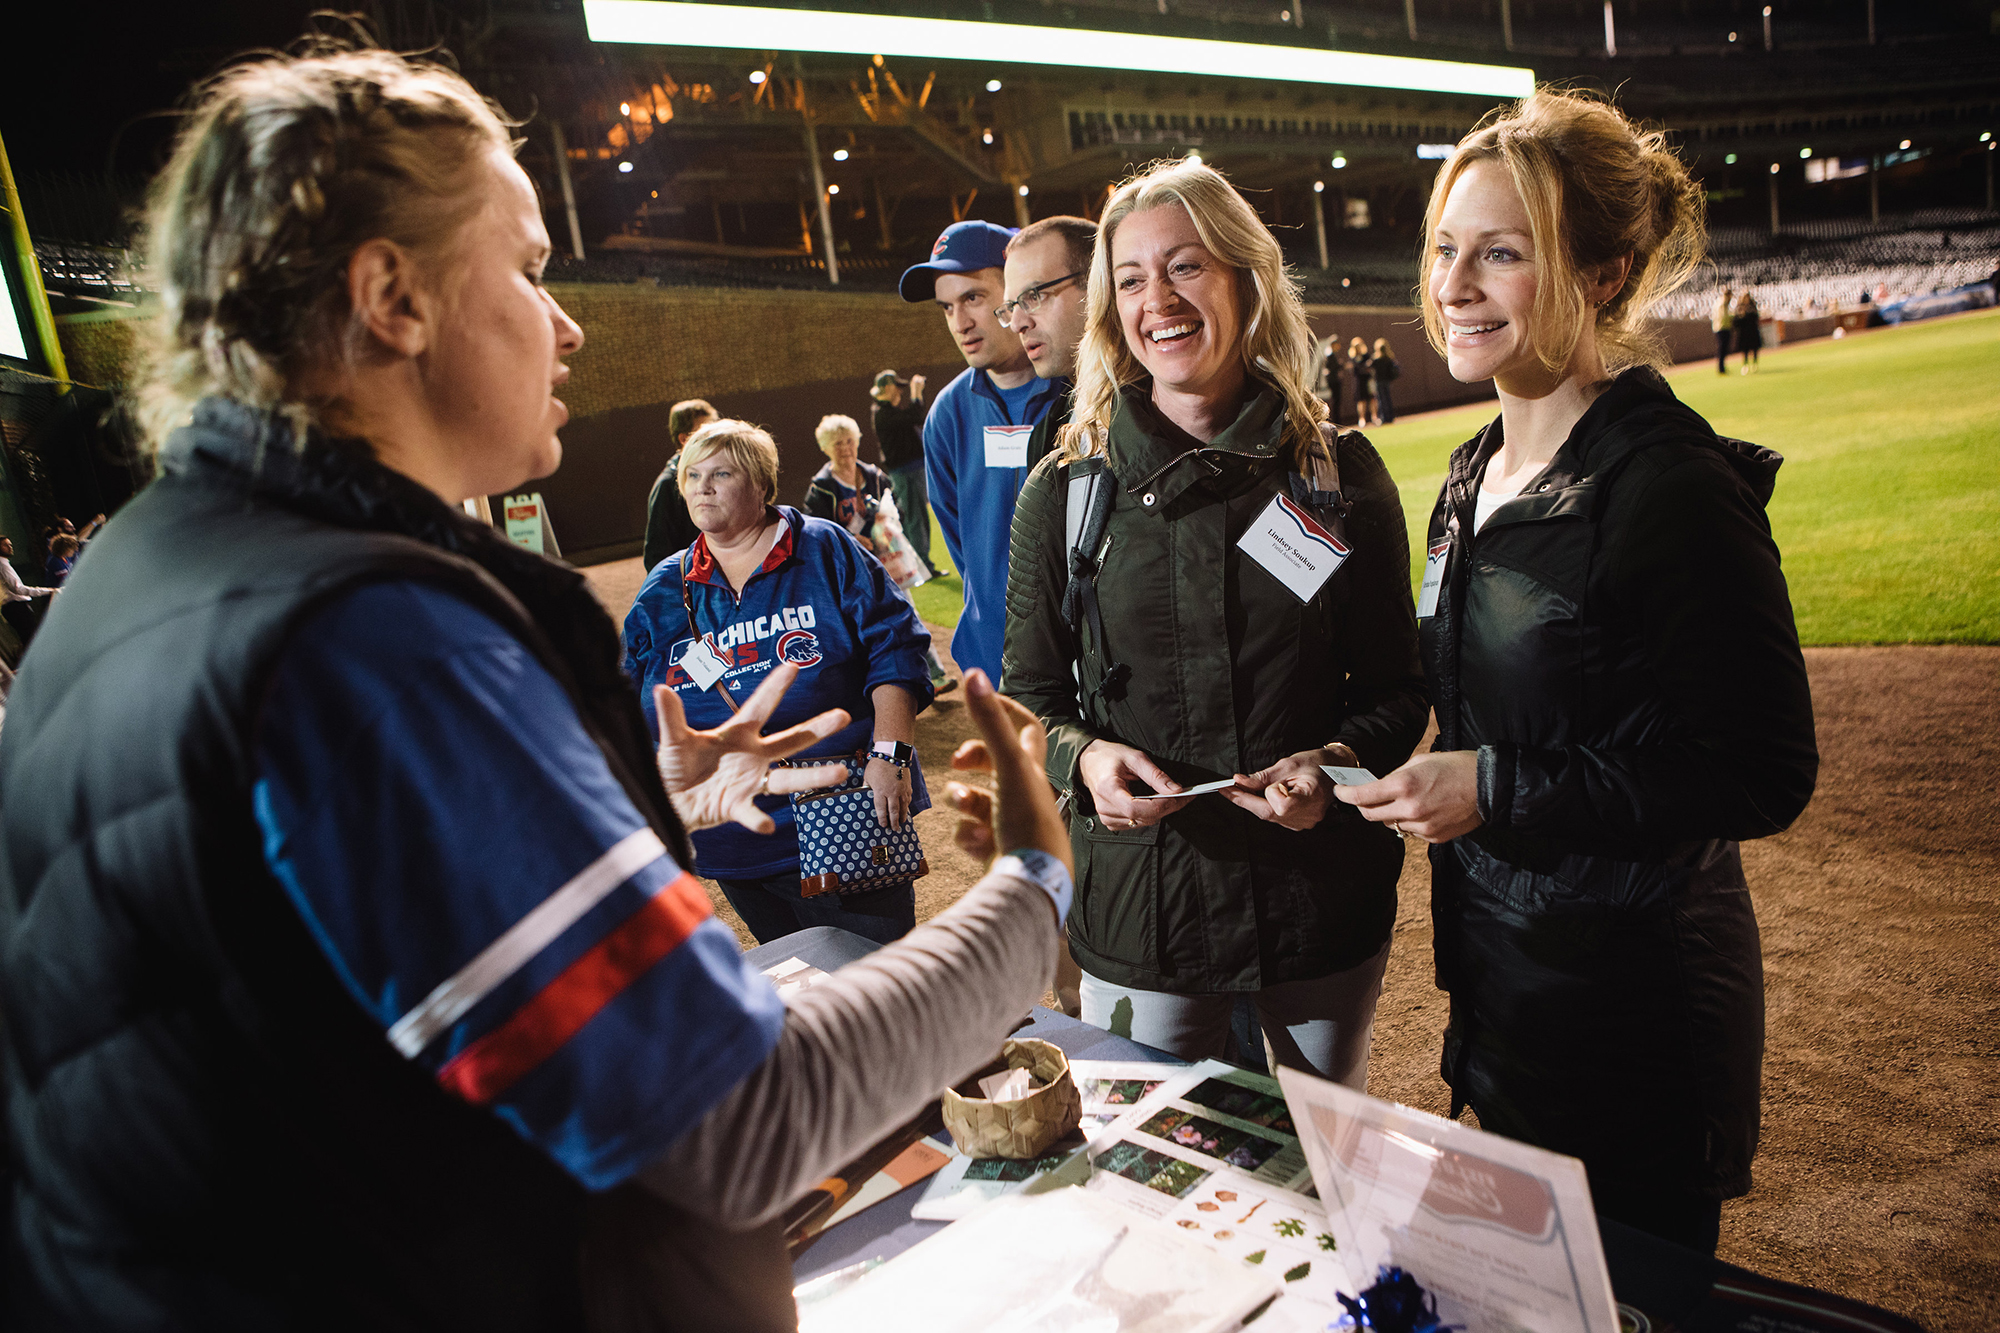 Founders' Council members gather at Wrigleyfield for an event. Two members smile and stand at a table in the field and talk with a Field scientist.